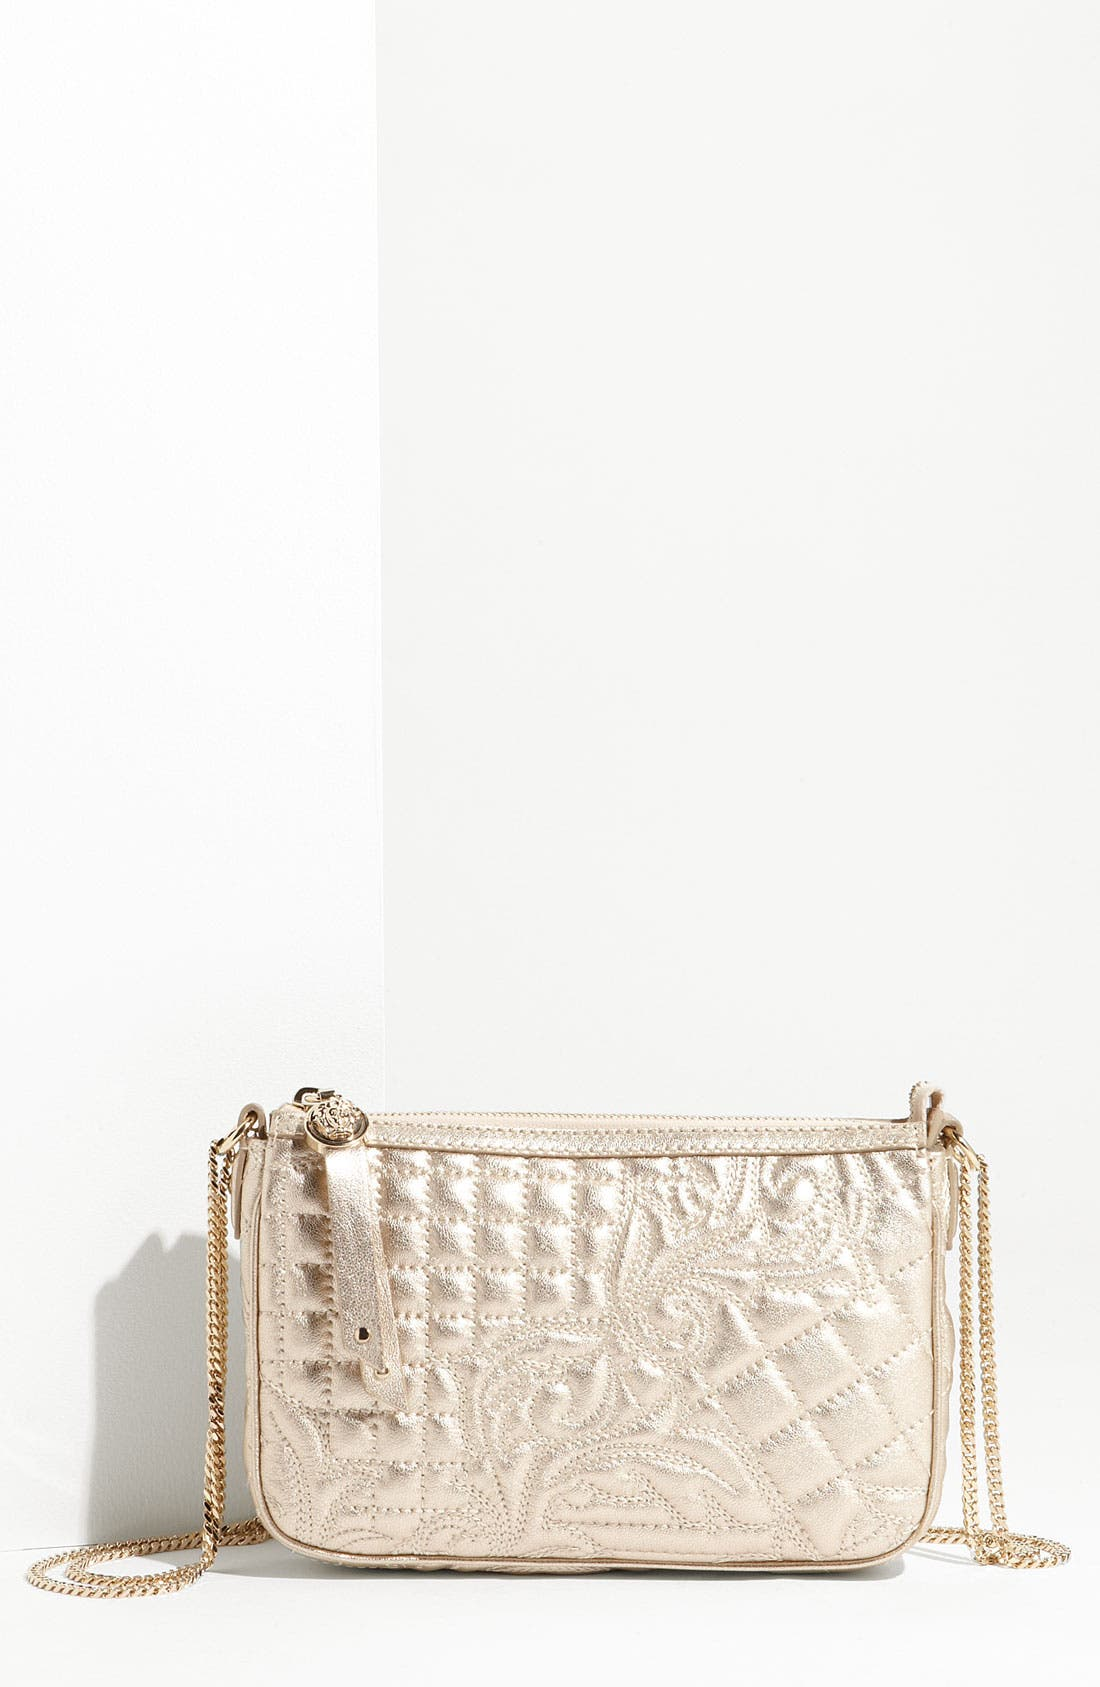 Alternate Image 1 Selected - Versace 'Vanitas' Embroidered Leather Crossbody Bag